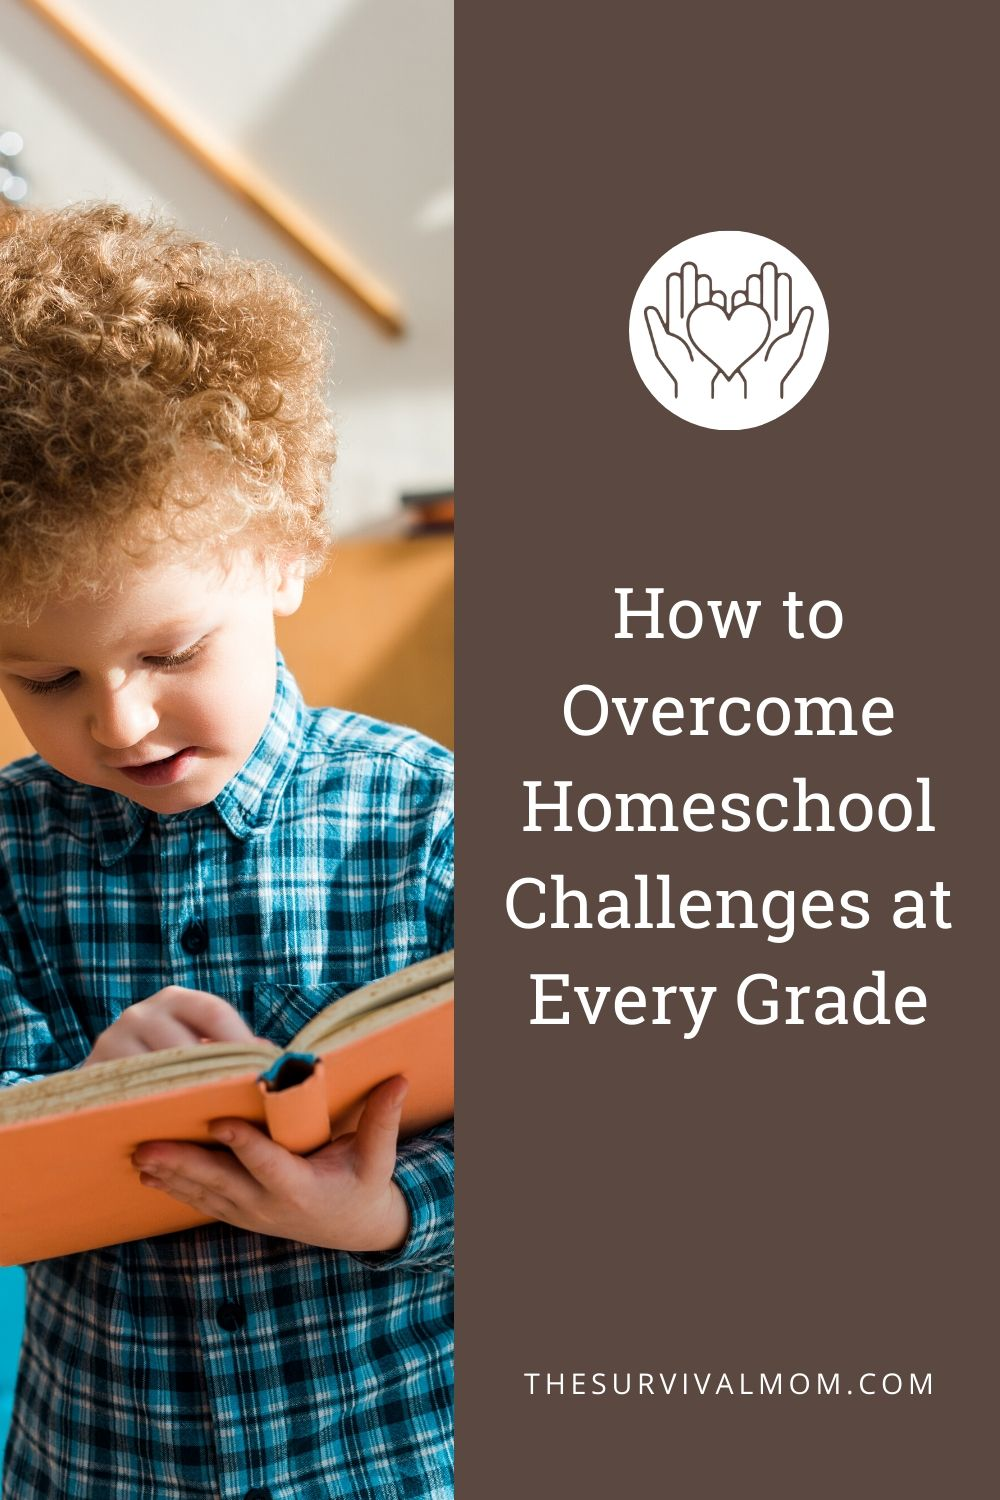 How to Overcome Homeschool Challenges at Every Grade via The Survival Mom